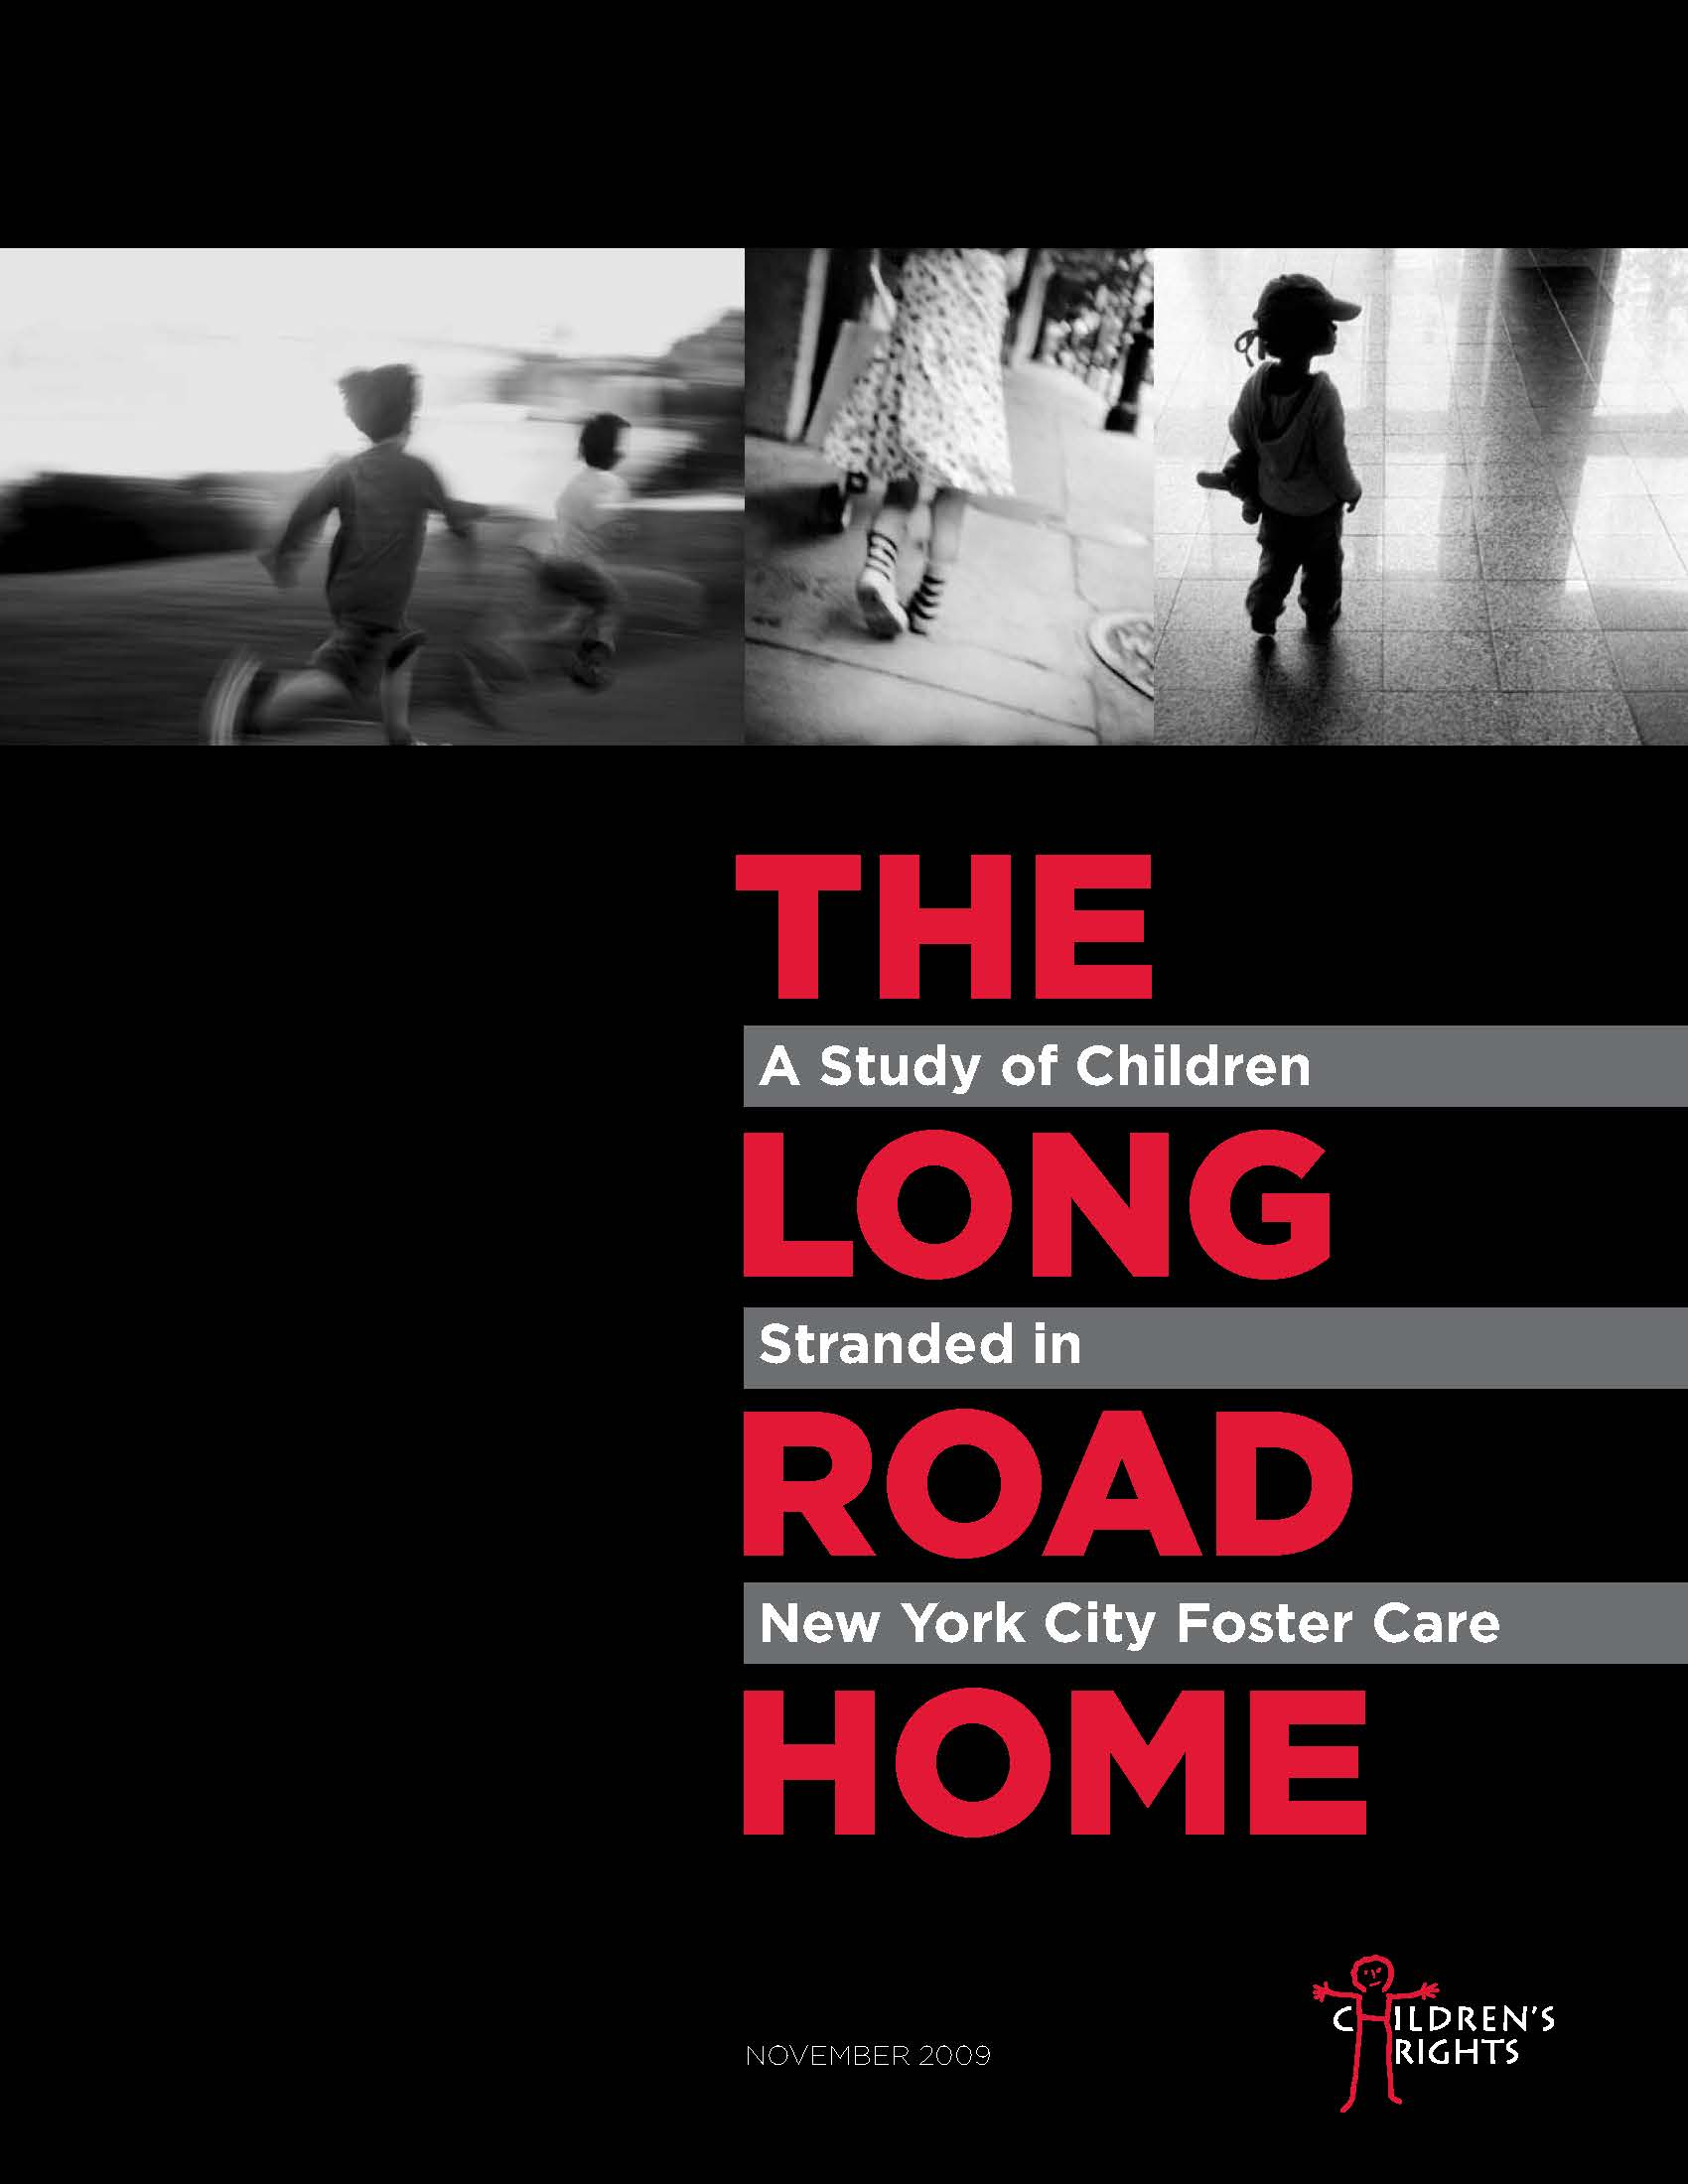 The Long Road Home: A Study of Children Stranded in New York City Foster Care (2009)